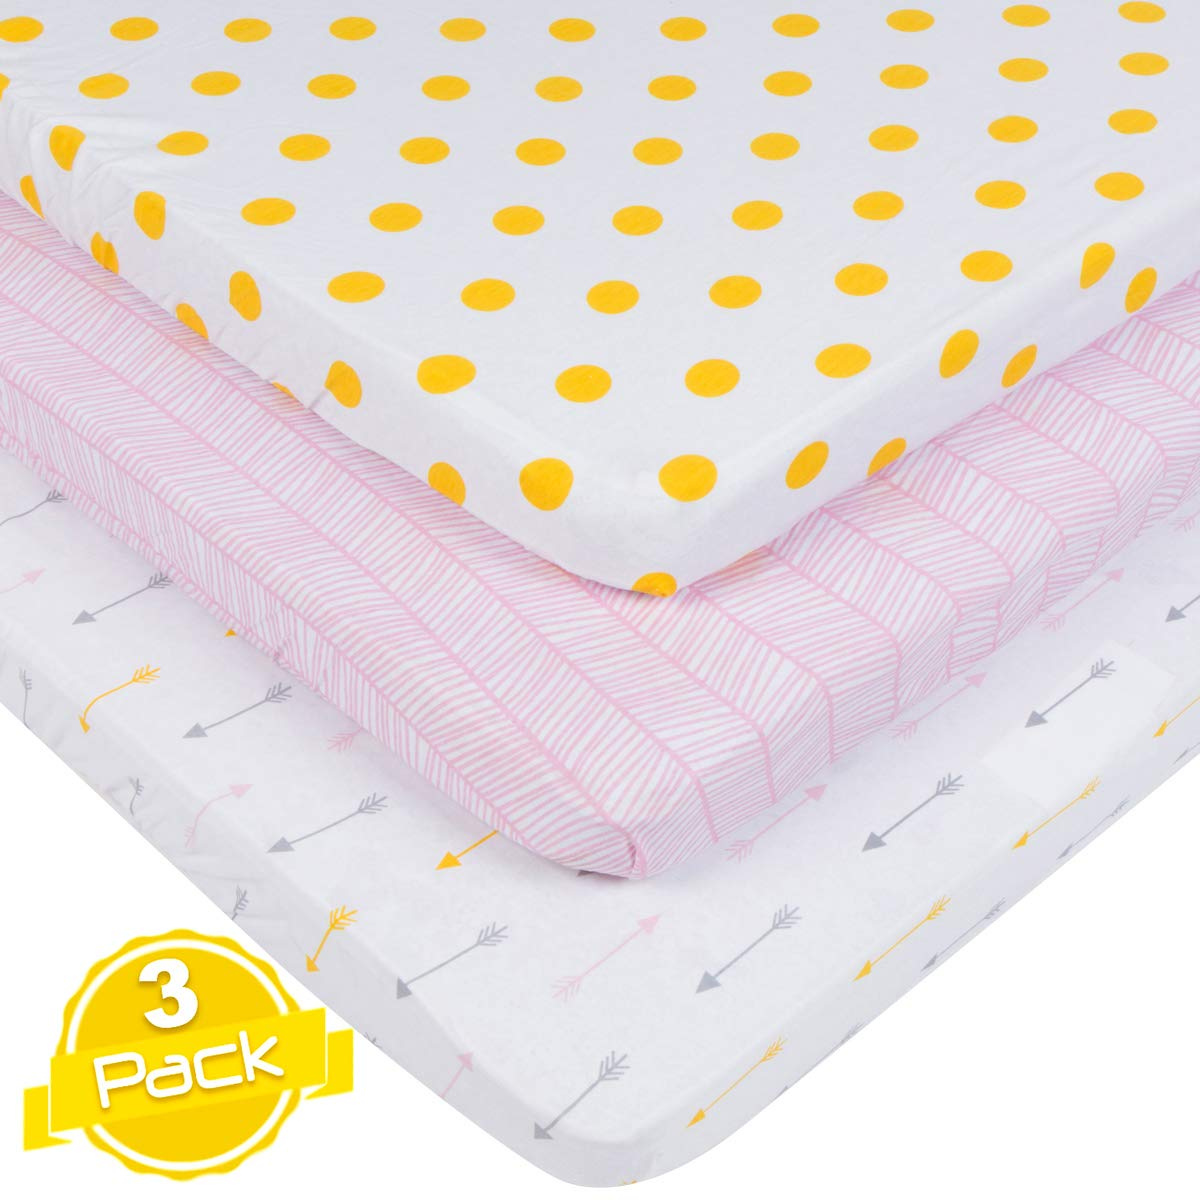 Pack n Play Playard Sheet Set | 3 Pack | 100% Super Soft Jersey Knit Cotton (150 GSM) | Portable Mini Crib Mattress Fitted Sheets for Boys & Girls by BaeBae Goods BaeBae & Company